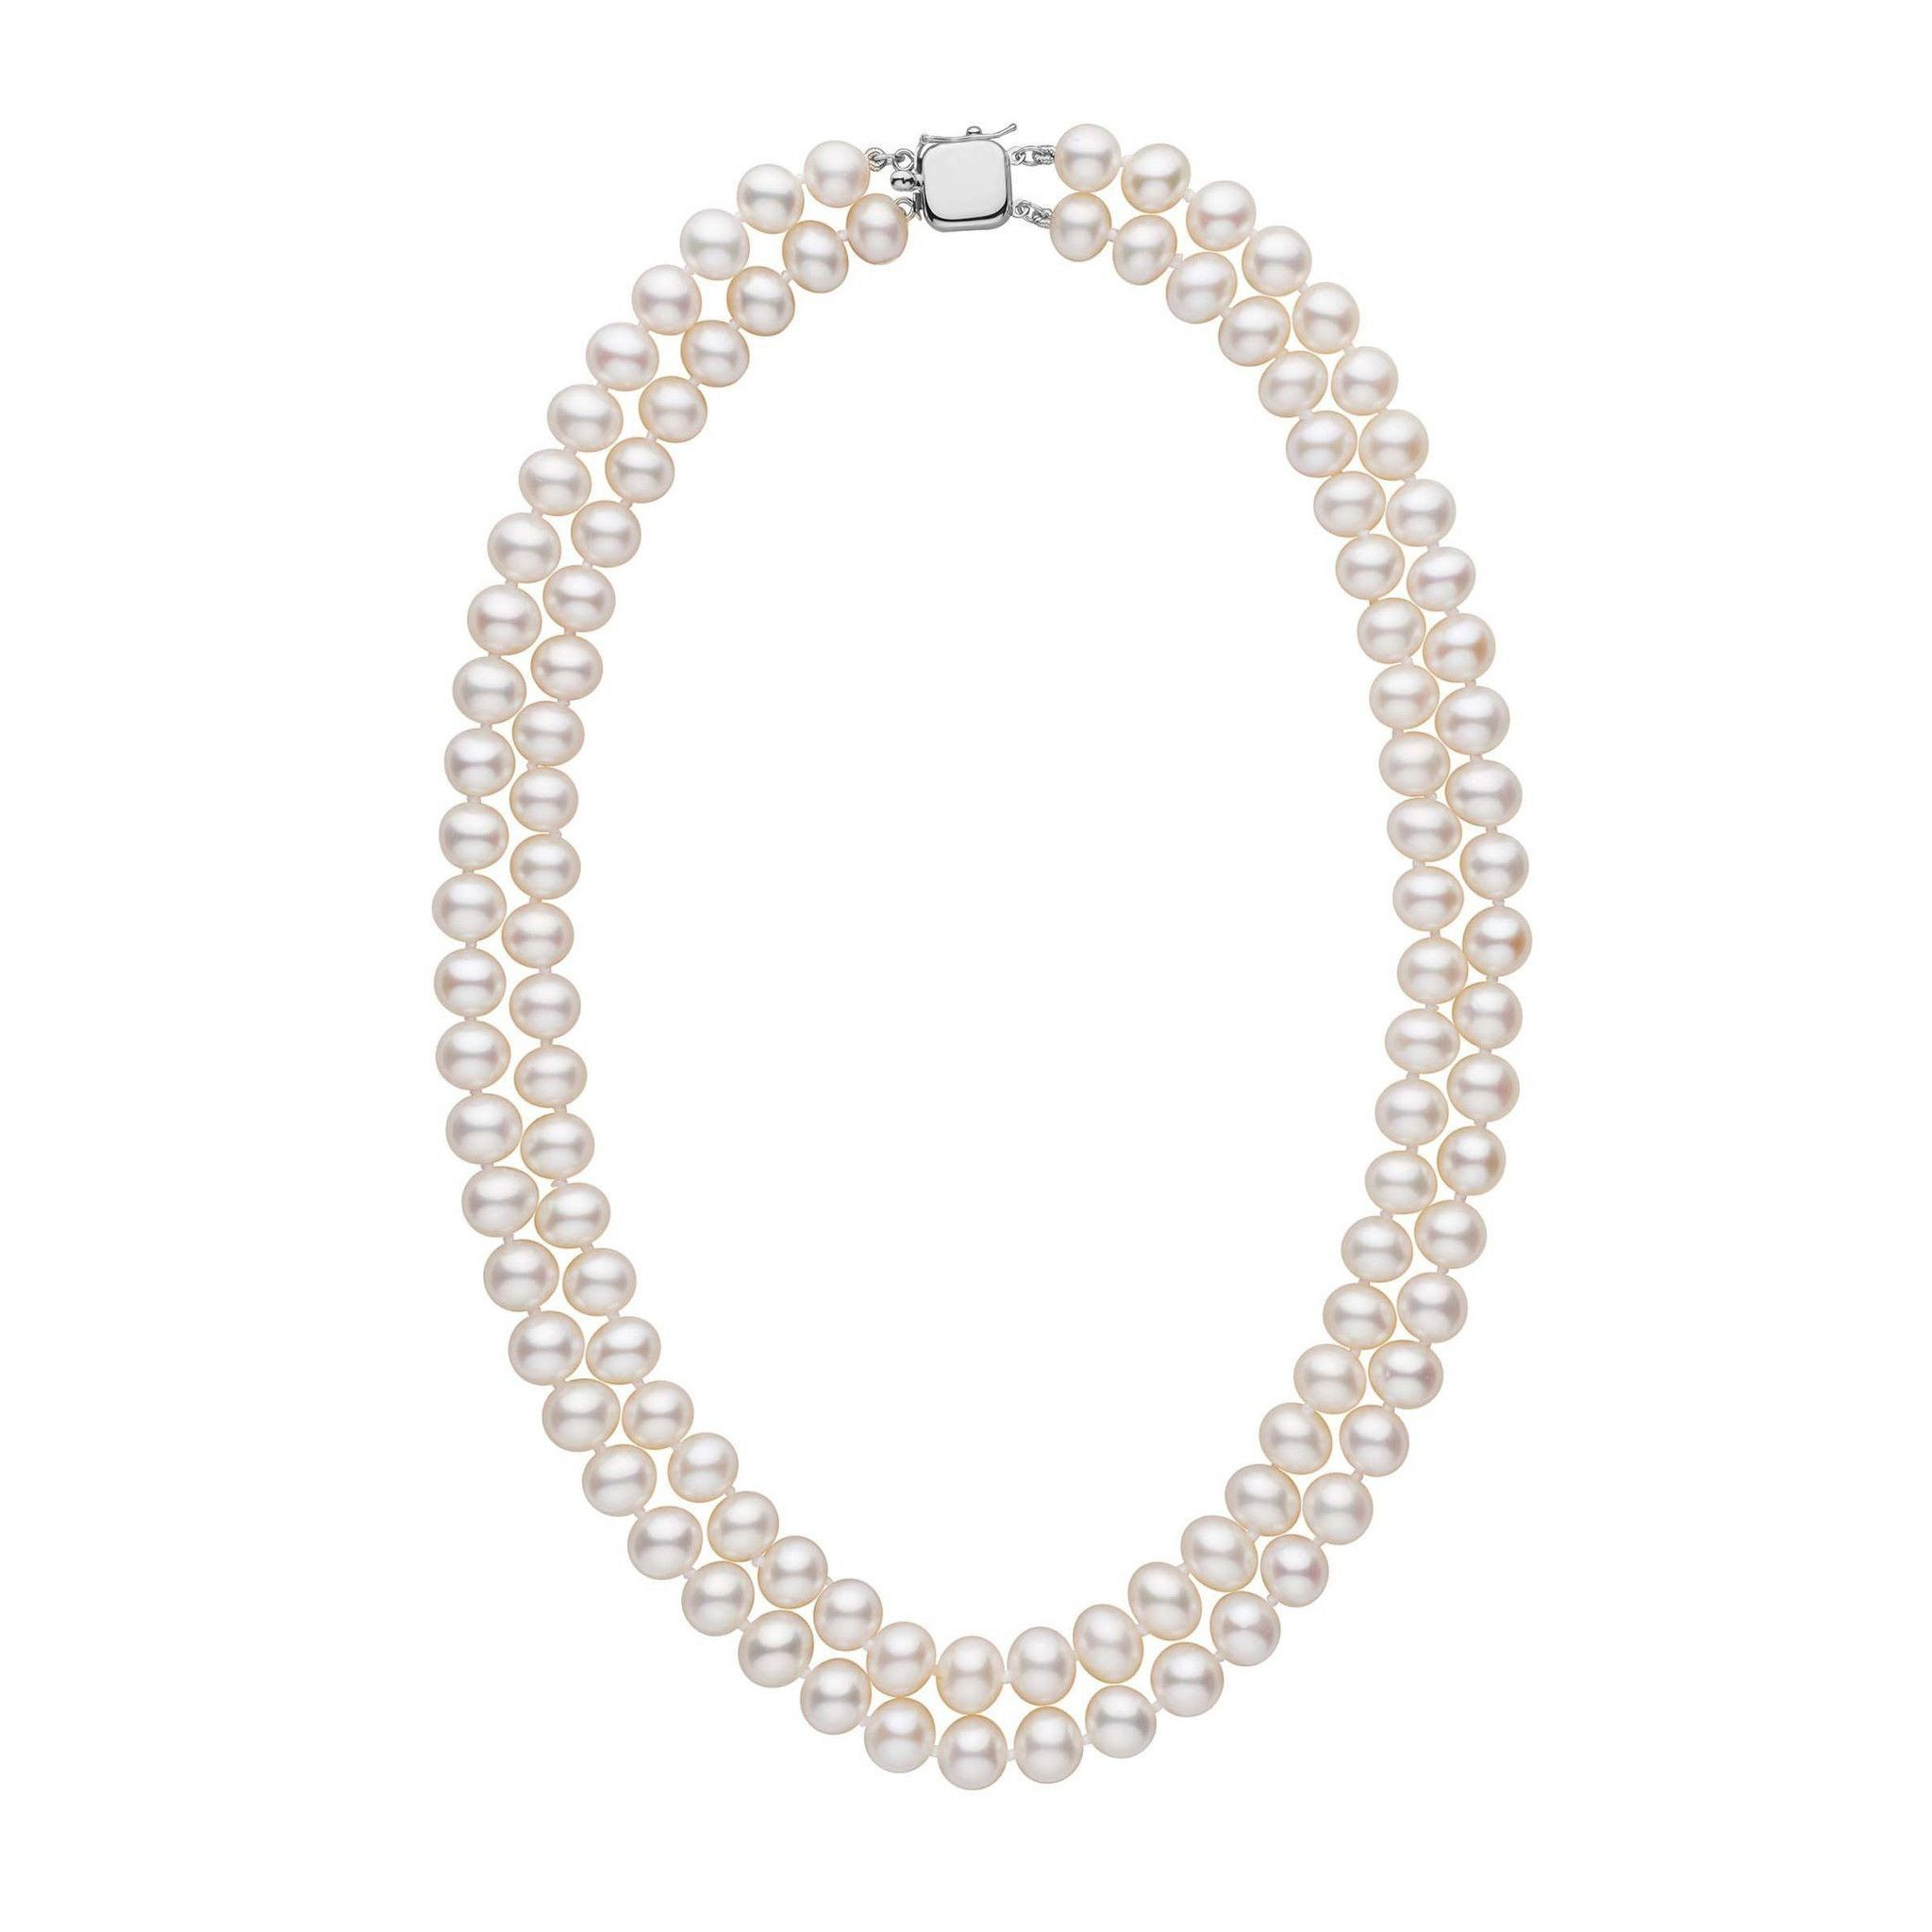 7.5-8.0 mm Double Strand AA+ White Freshwater Pearl Necklace